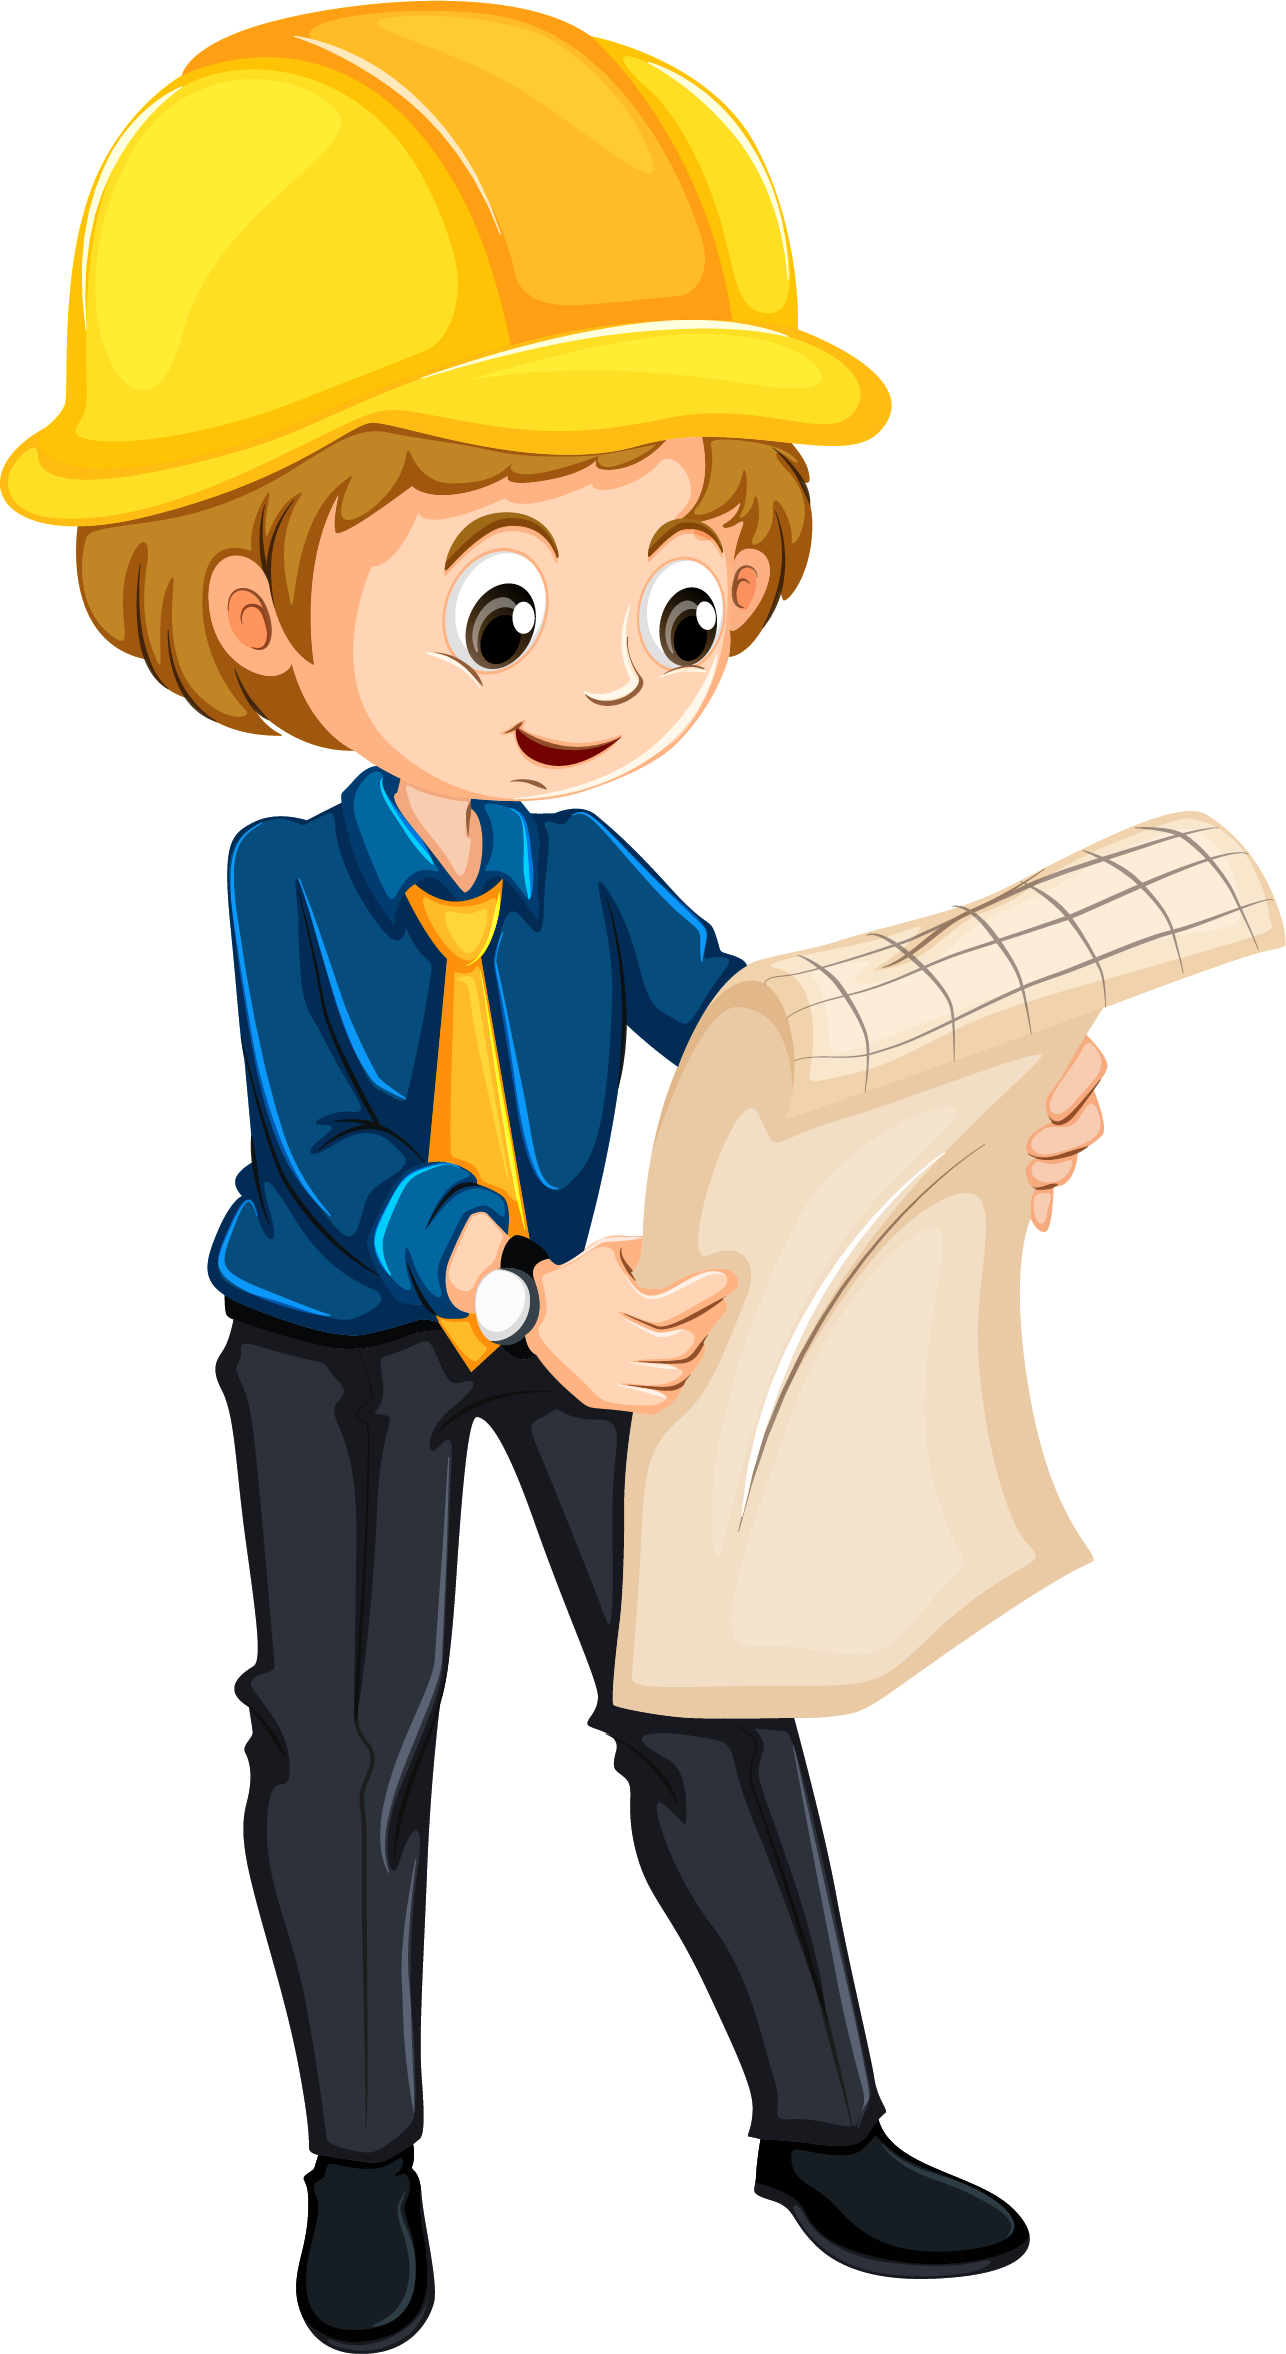 Professional clipart professional engineer. Engineering clip art holding